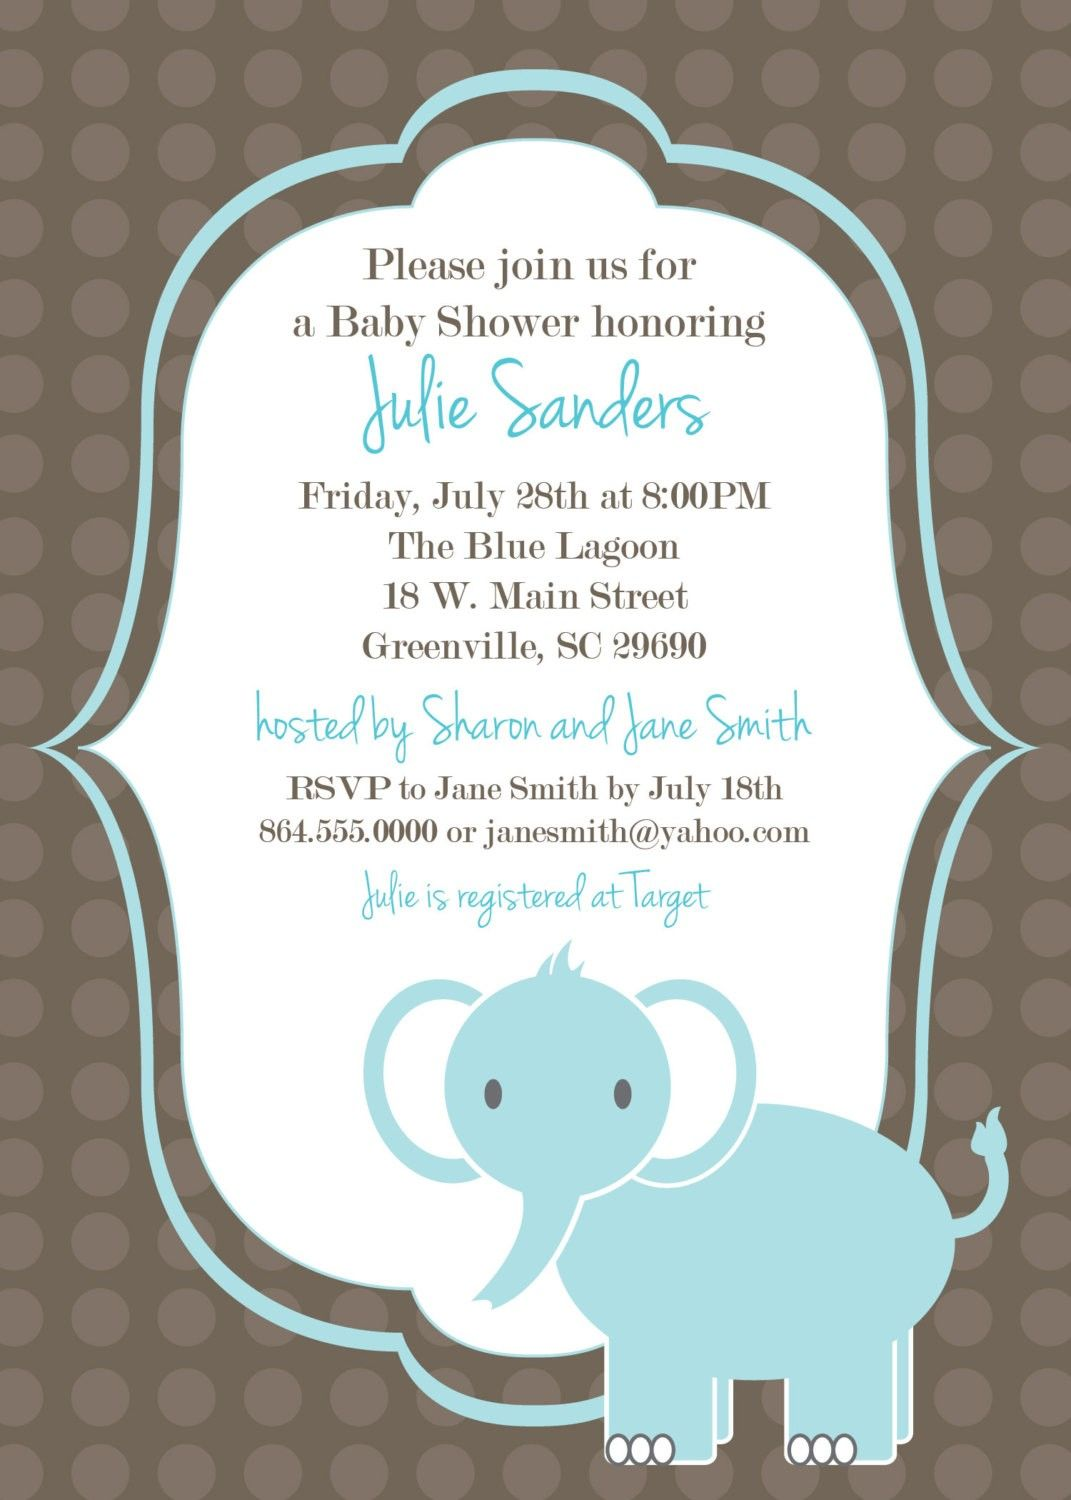 Charming Download FREE Template Got The Free Baby Shower Invitations With Free Baby Shower Invitations Templates Printables